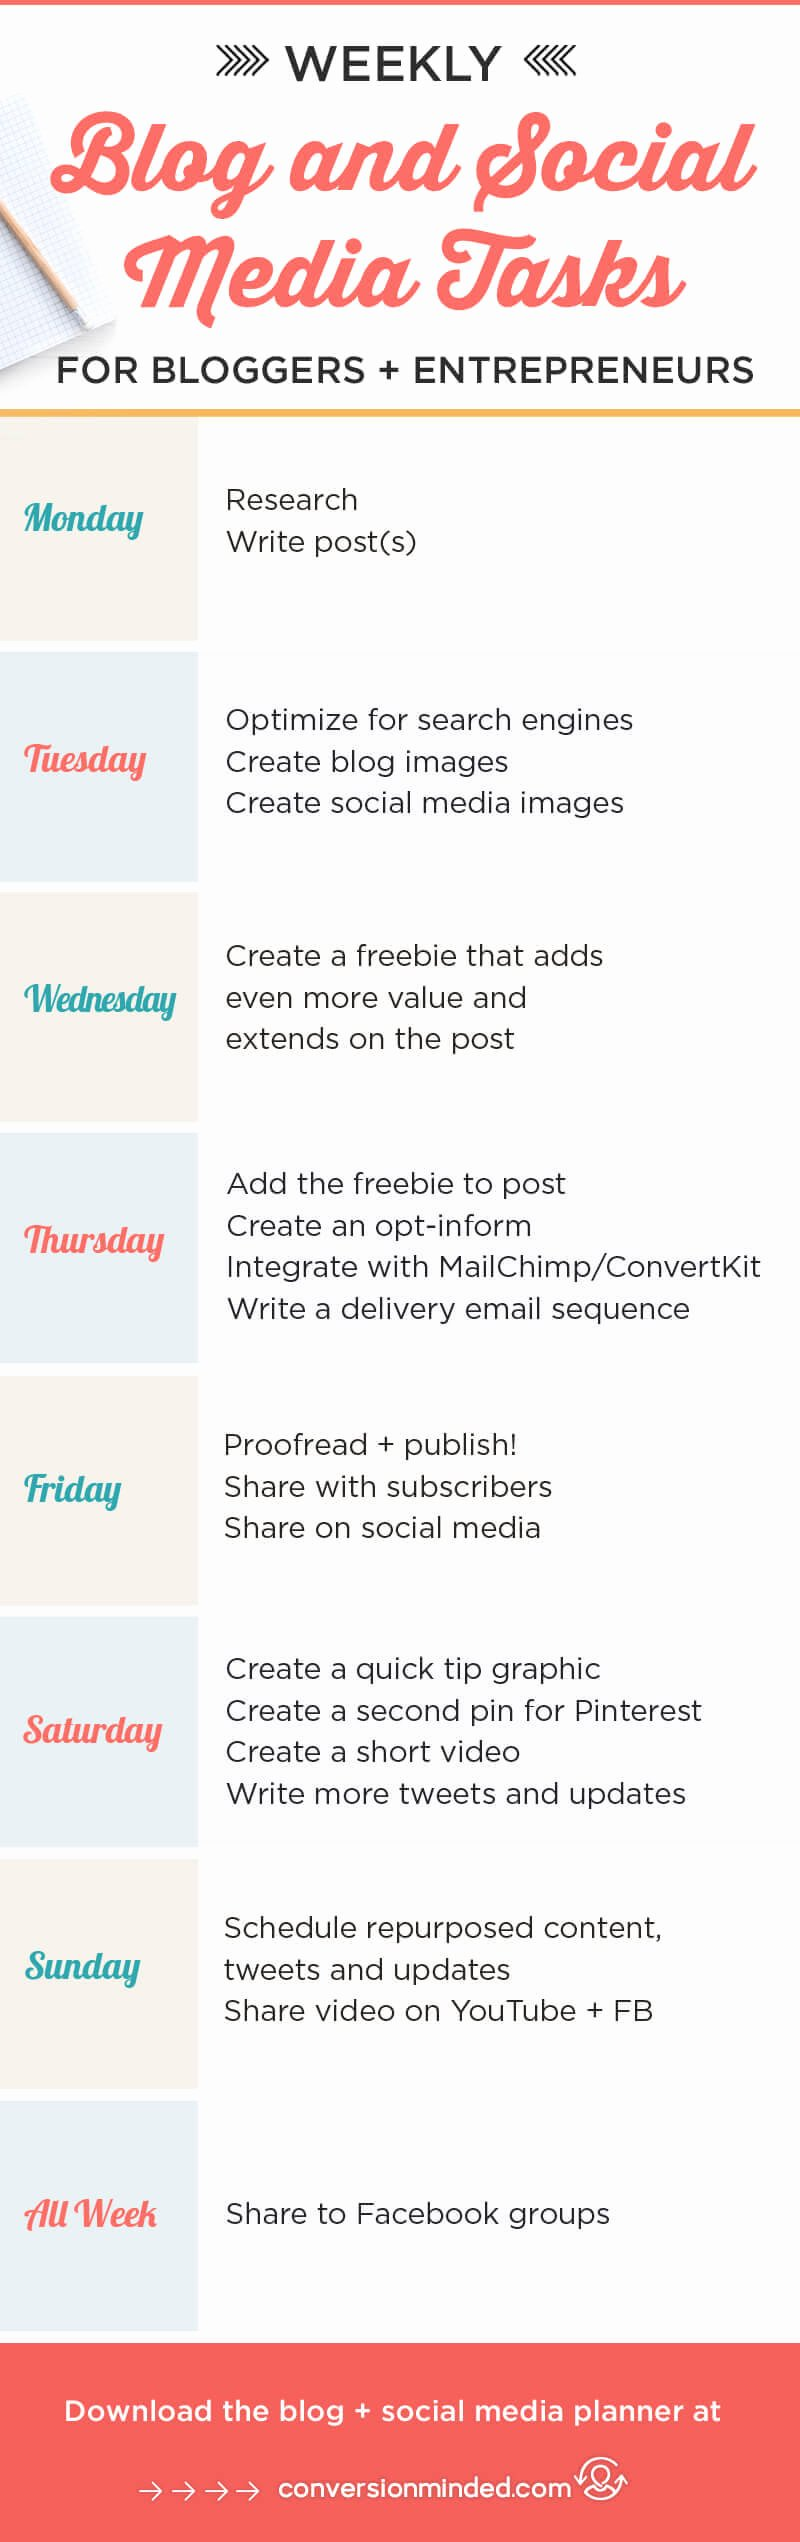 7 Day social Media Plan for Your Blog Plus A Free Planner